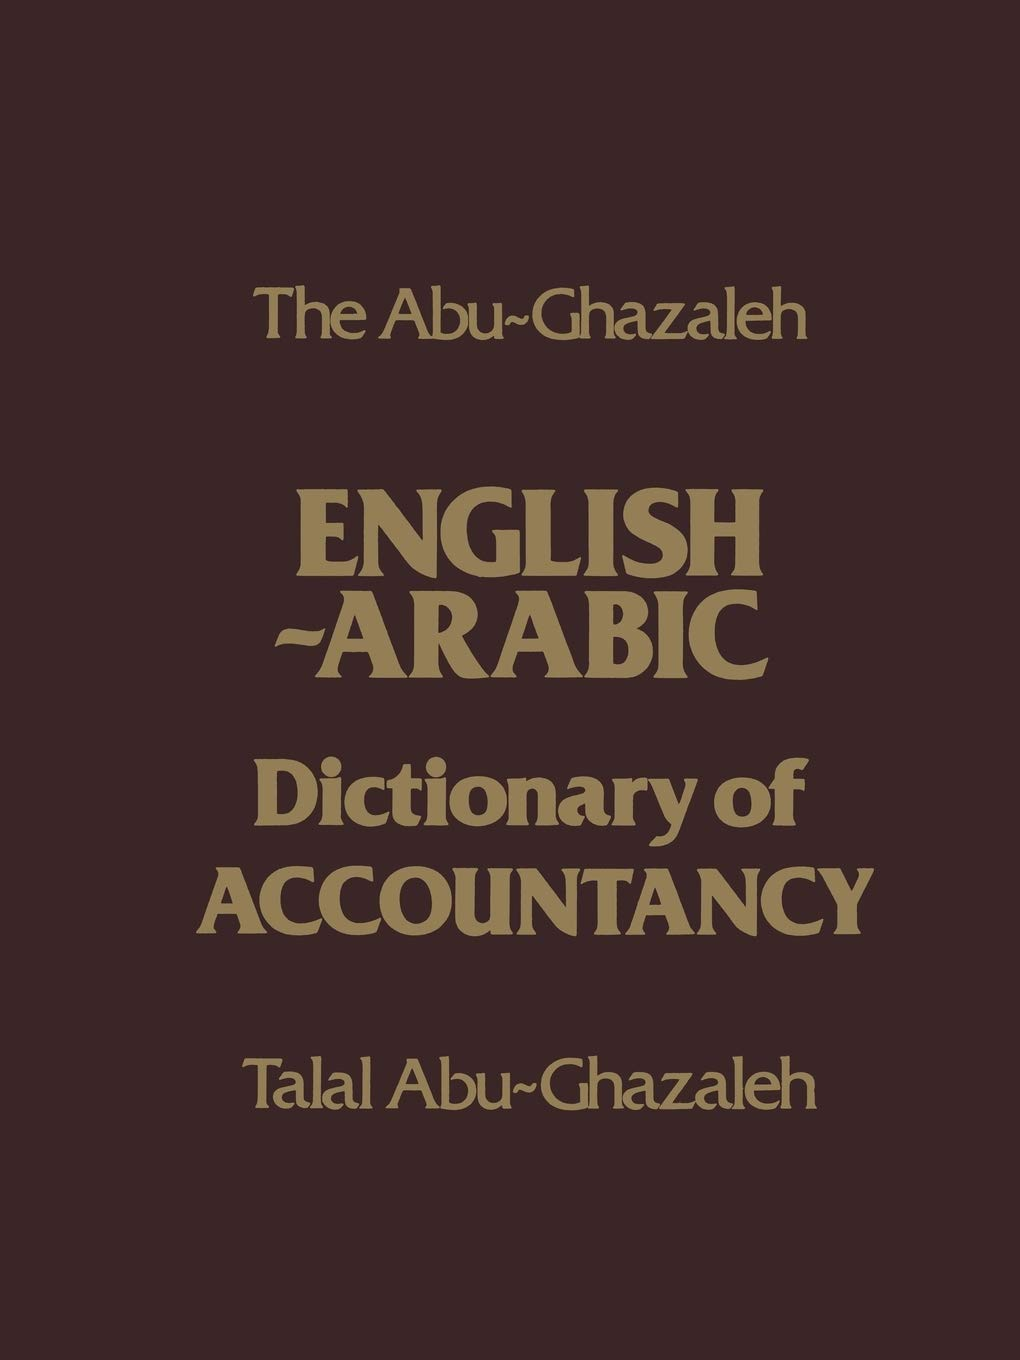 Image OfThe Abu-Ghazaleh English-Arabic Dictionary Of Accountancy